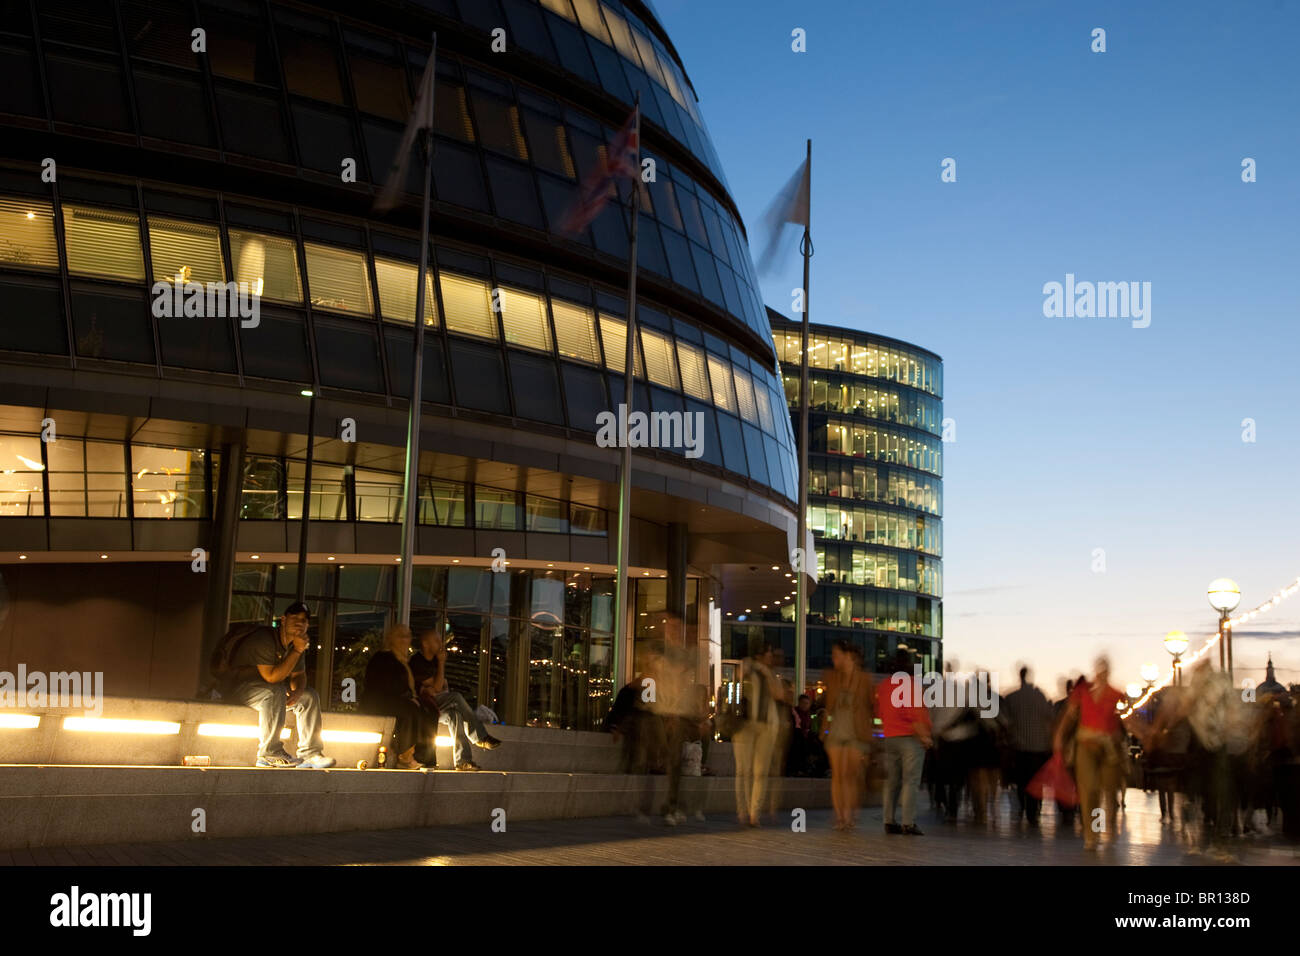 City Hall, GLA on the South Bank of the River Thames, London - Stock Image